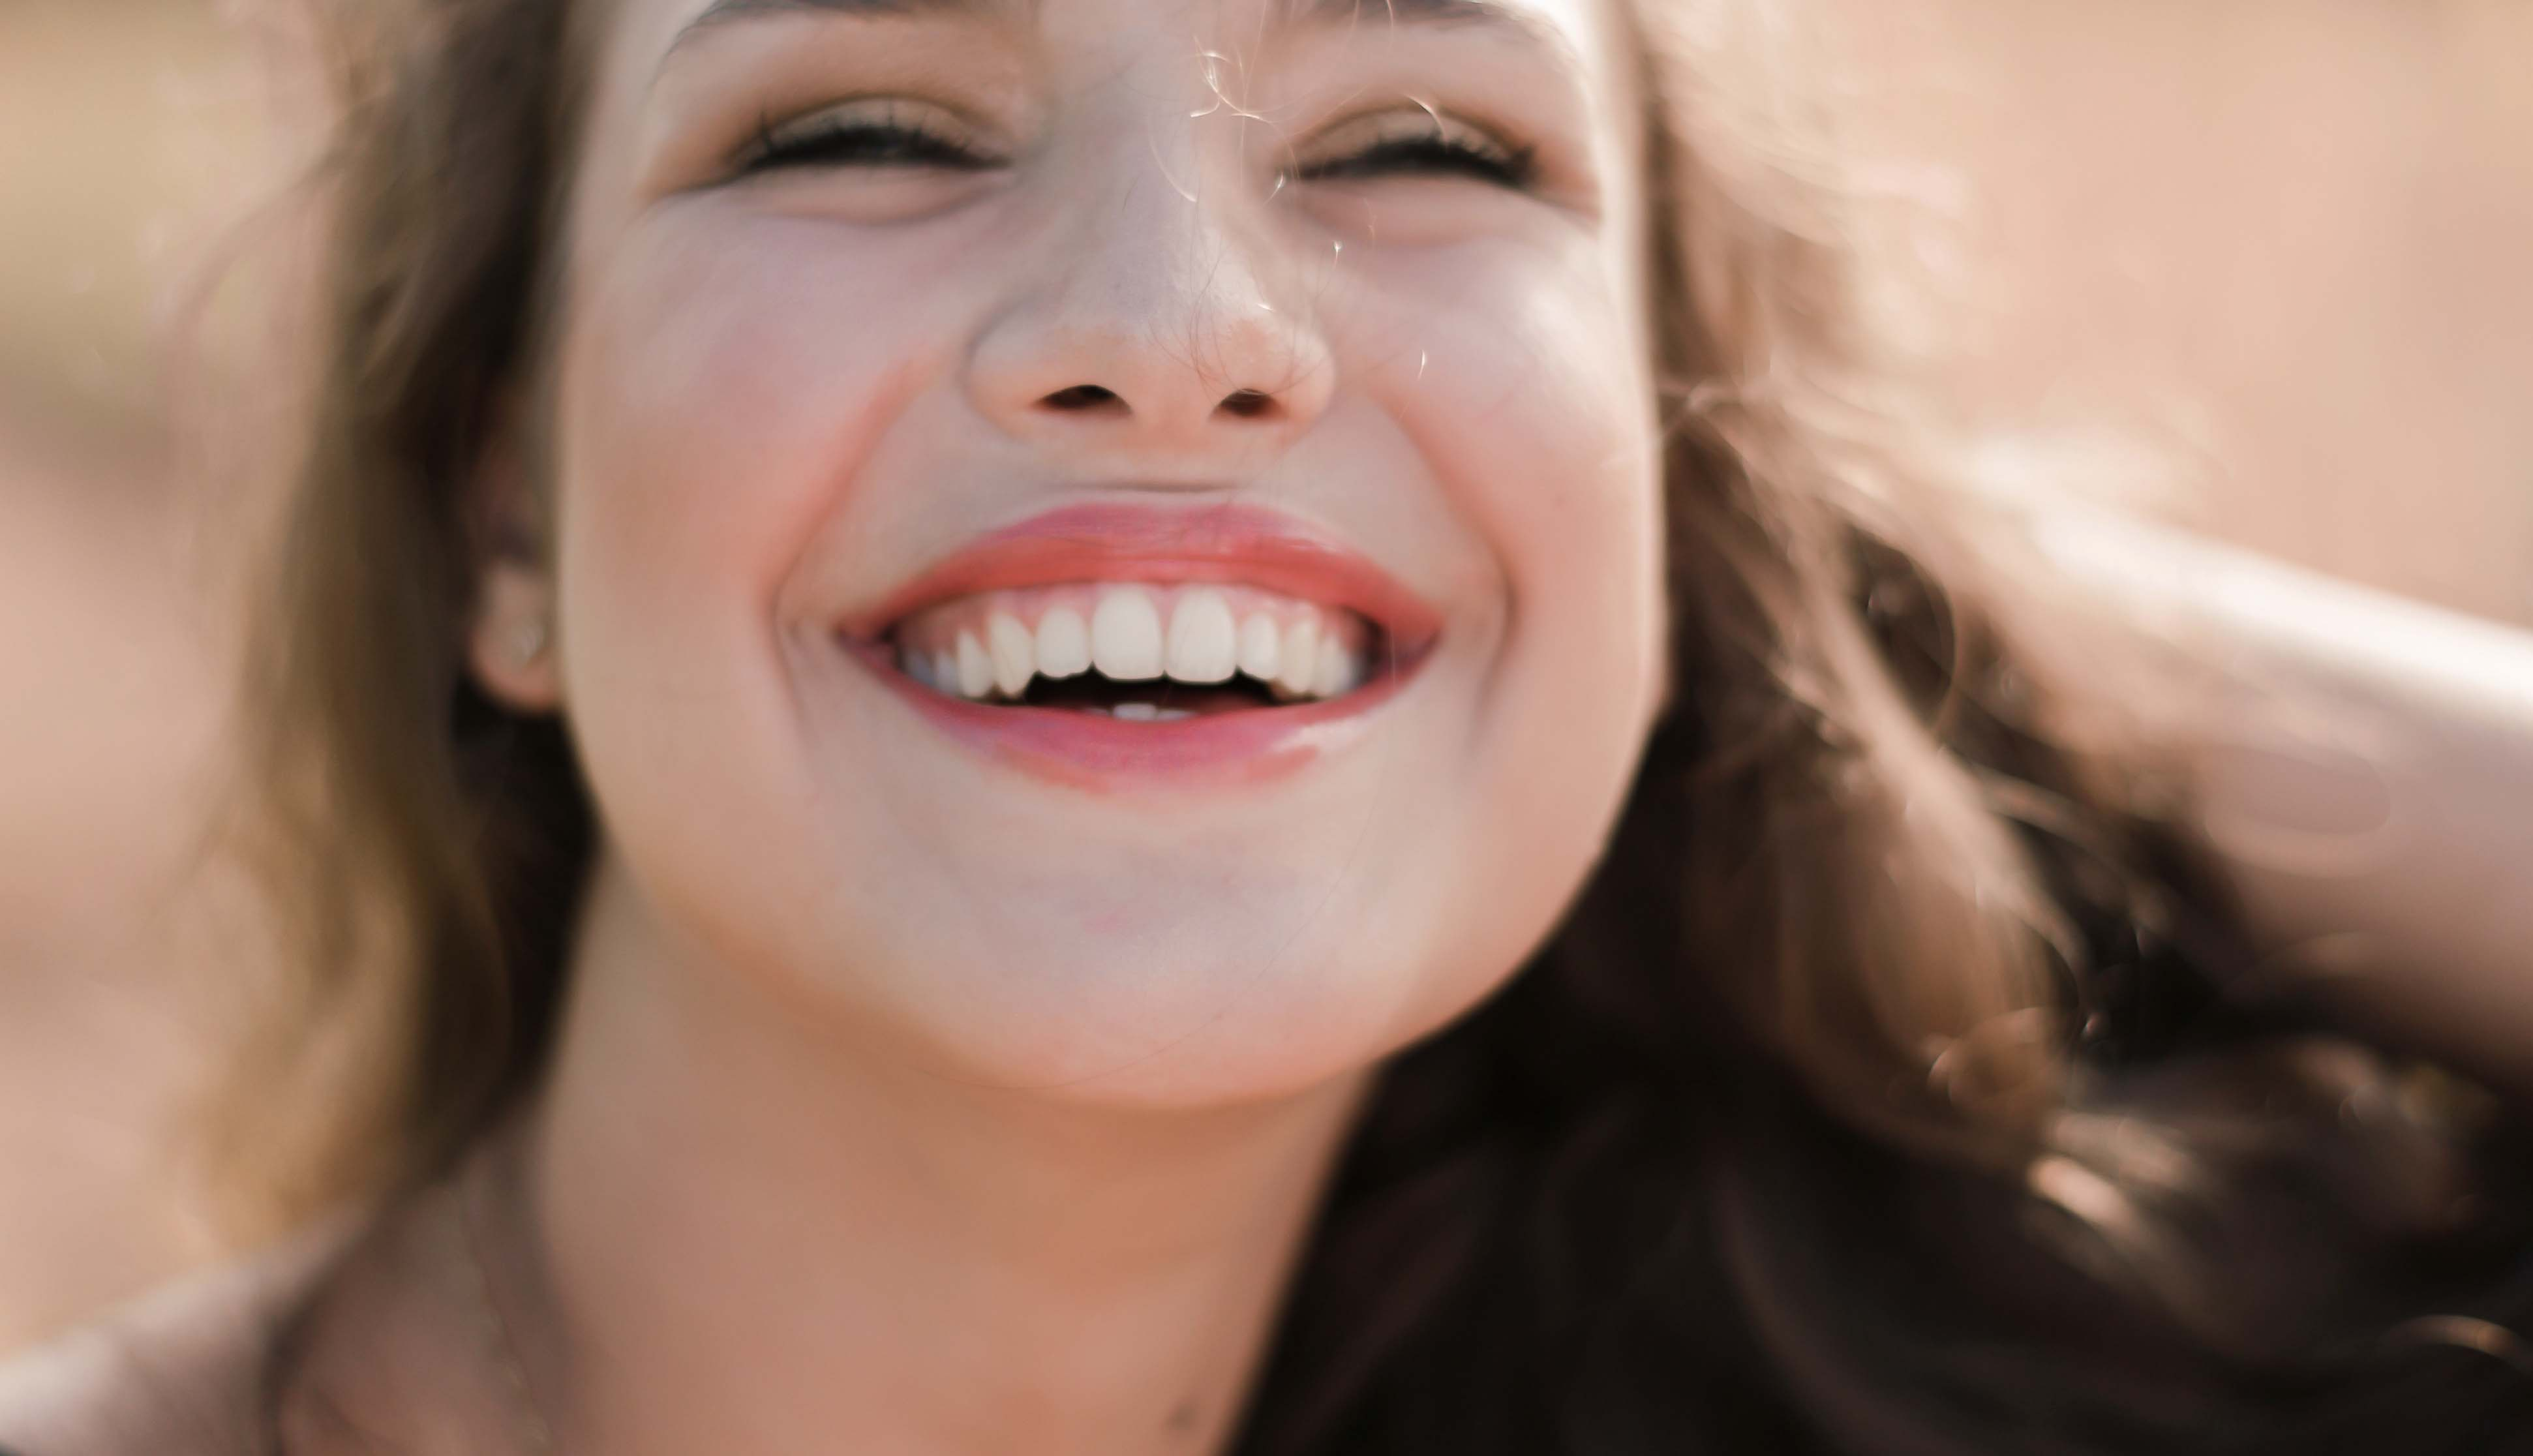 How to improve your smile - dentist office in Colorado